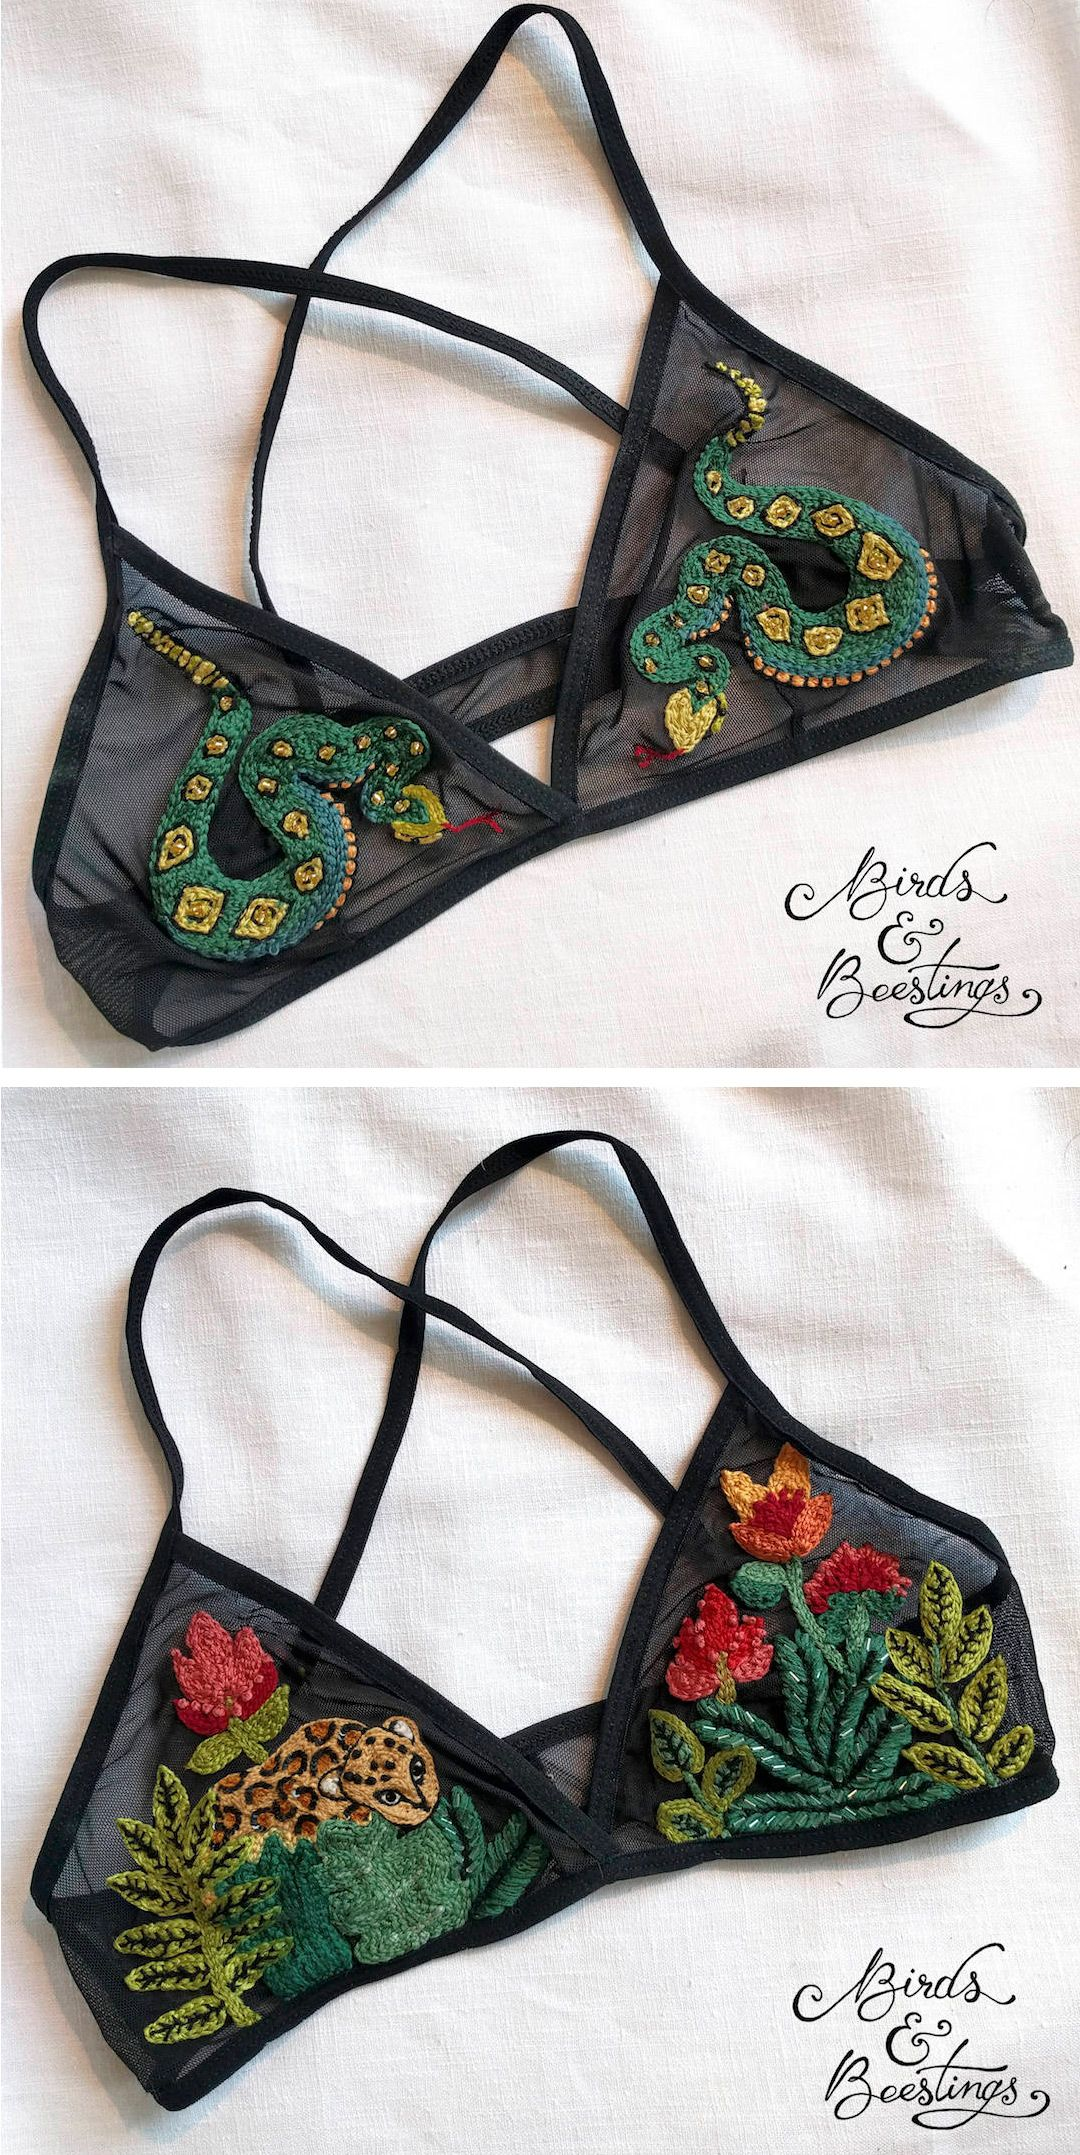 8ad37bb278782 Embroidered bralettes by Birds   Beestings    bespoke bras    bespoke  fashion    hand embroidery